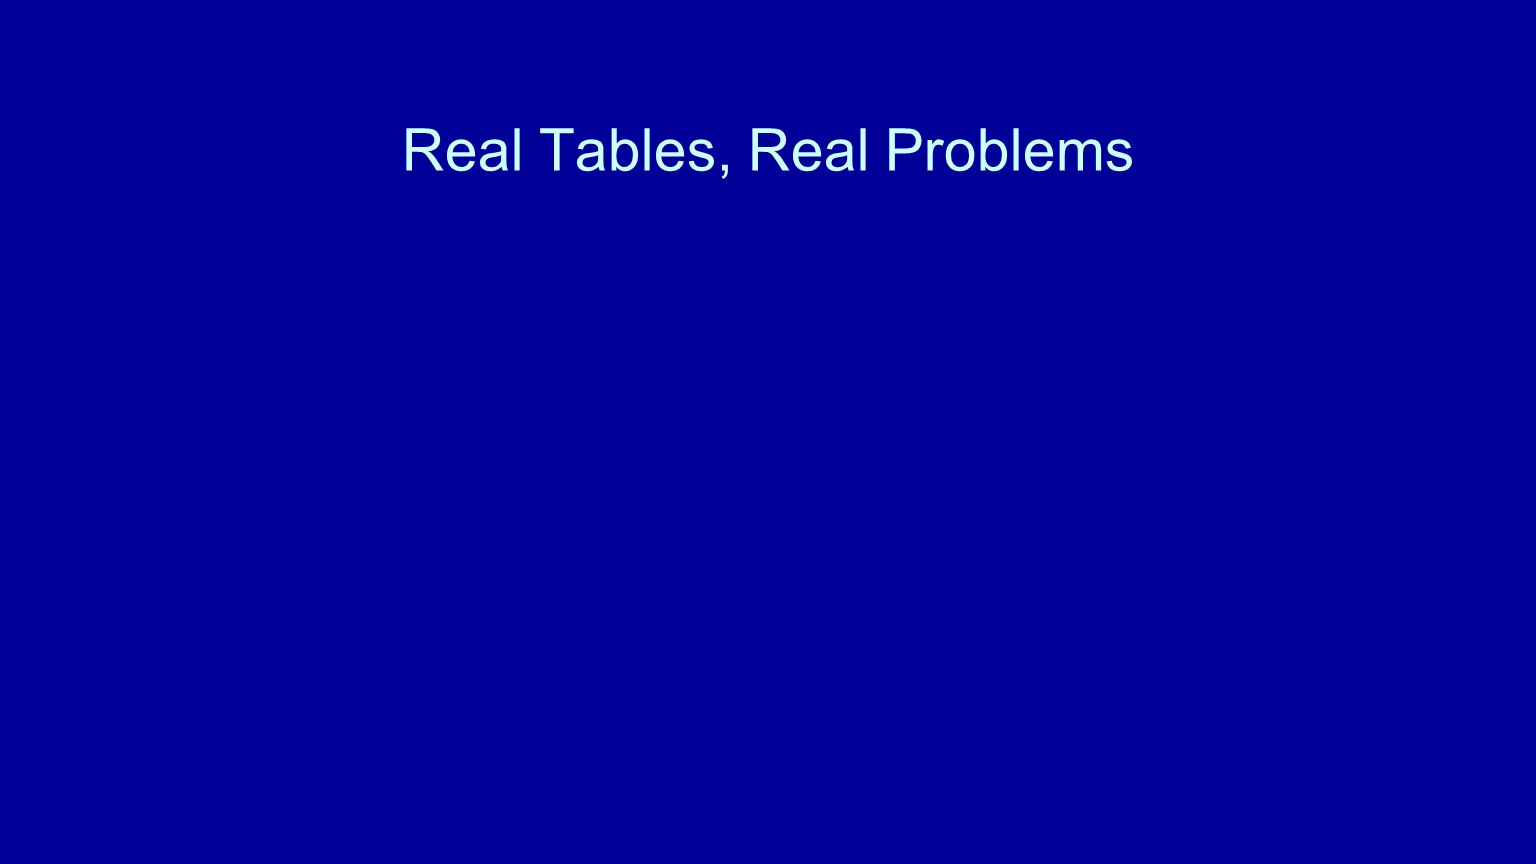 Real Tables, Real Problems